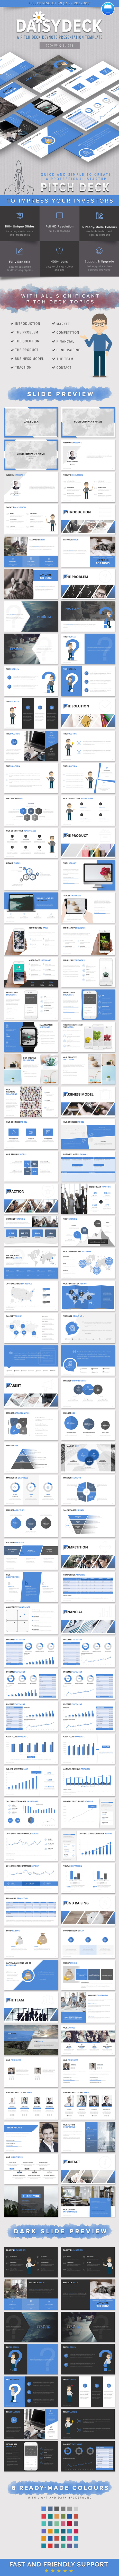 DaisyDeck – A Pitch Deck Keynote Presentation Template - Keynote Templates Presentation Templates